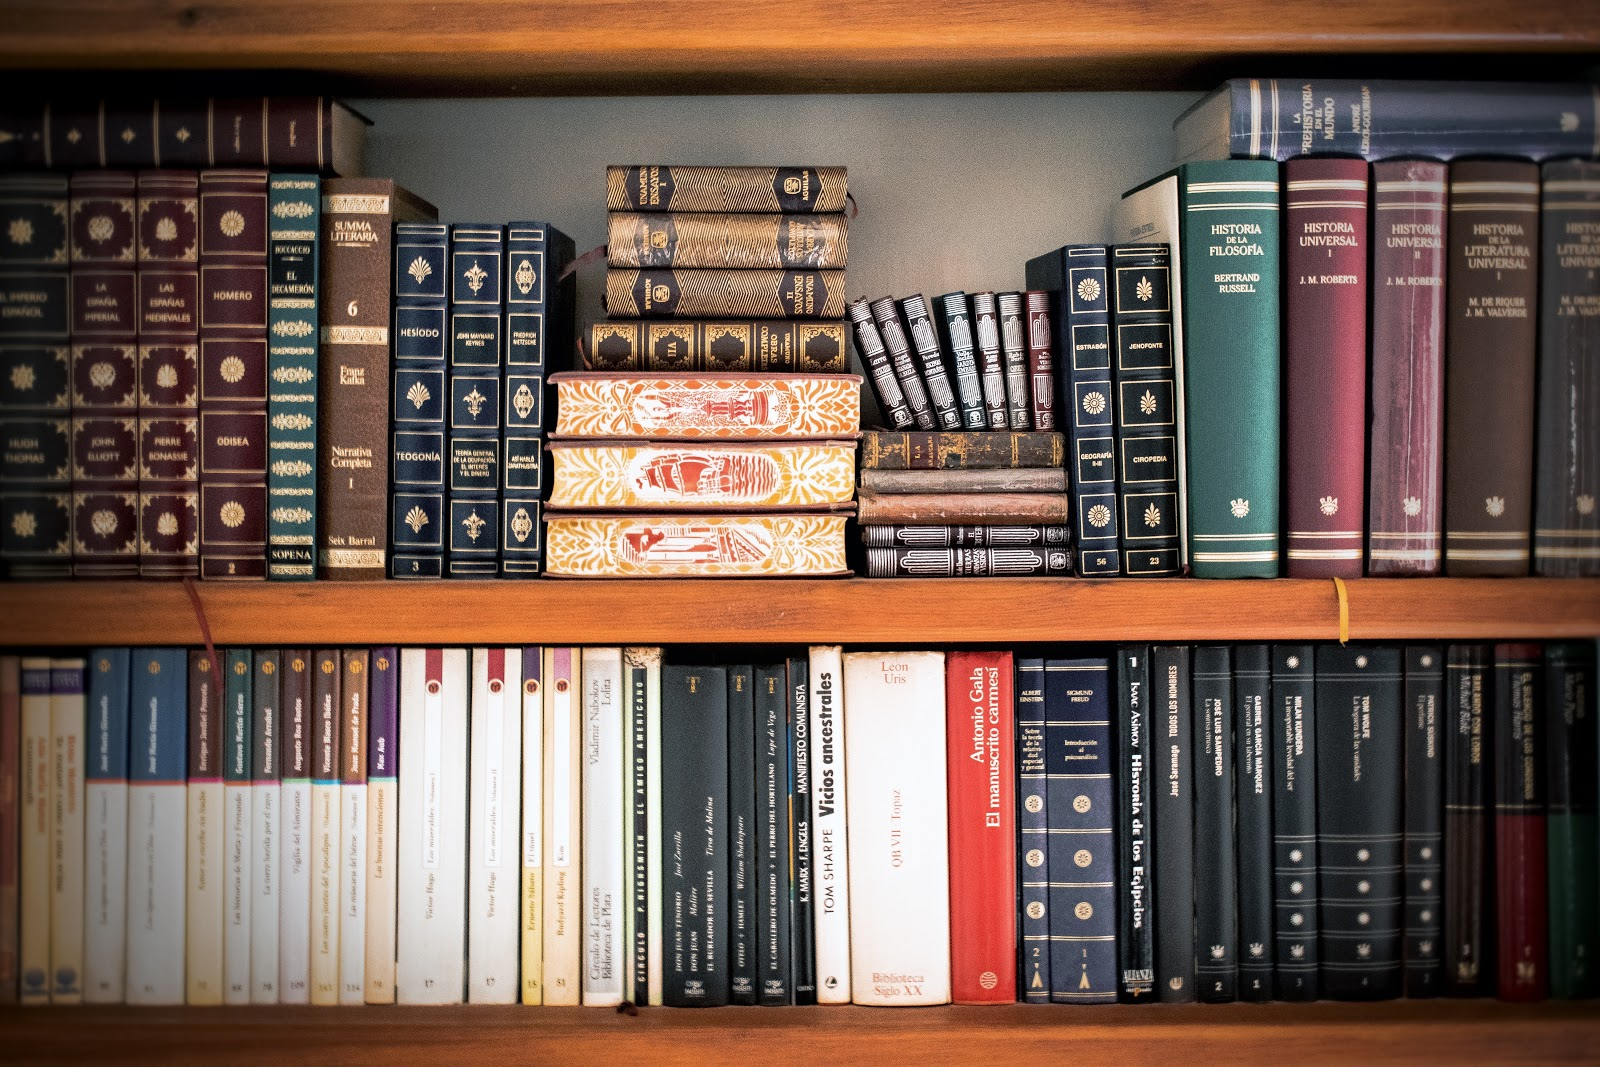 Bookshelf, representing corporate law